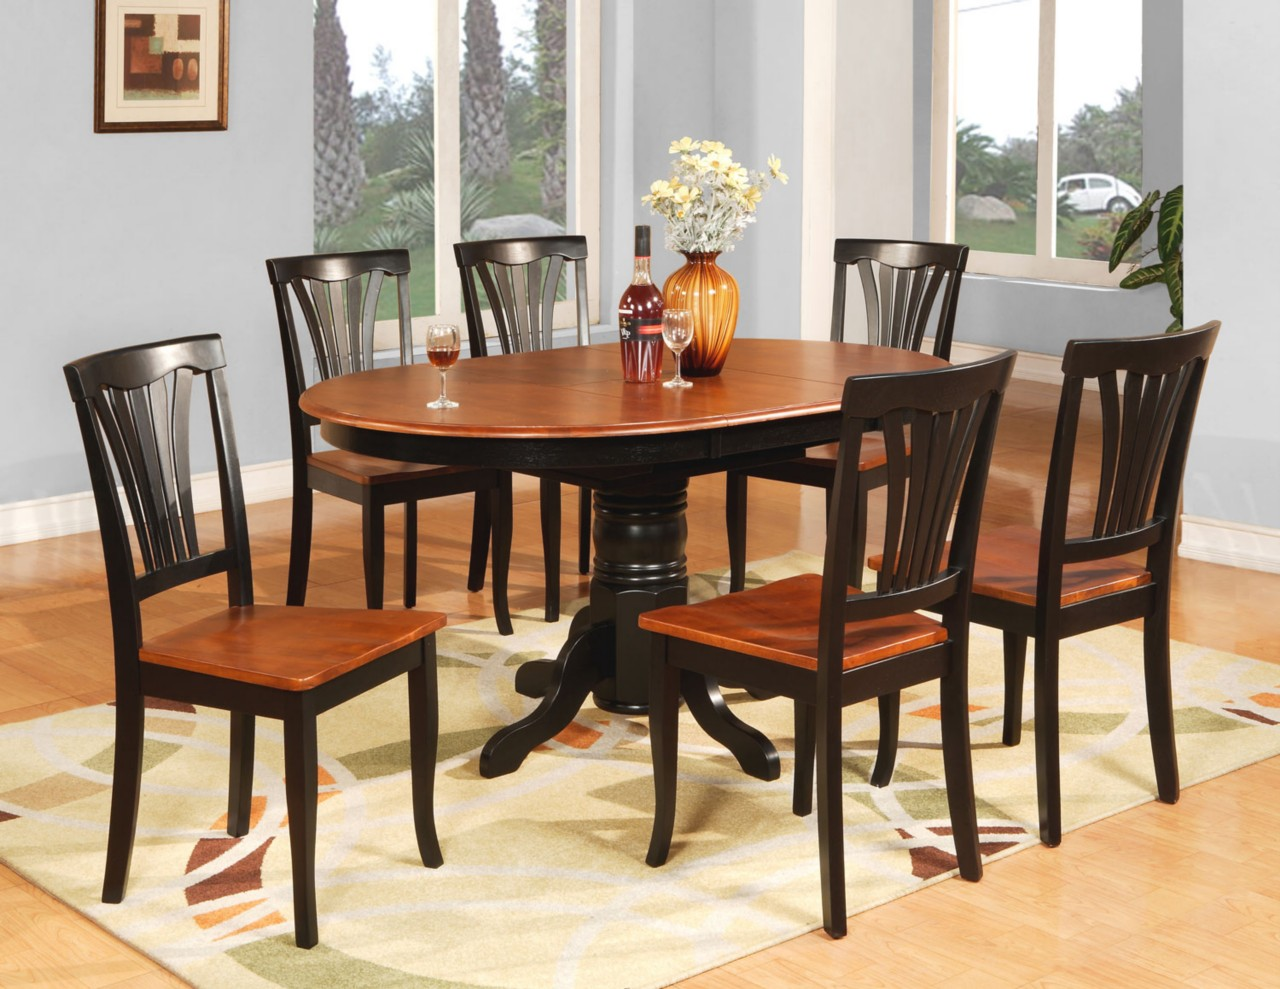 7 pc oval dinette kitchen dining room table 6 chairs ebay for Dining room table and 6 chairs